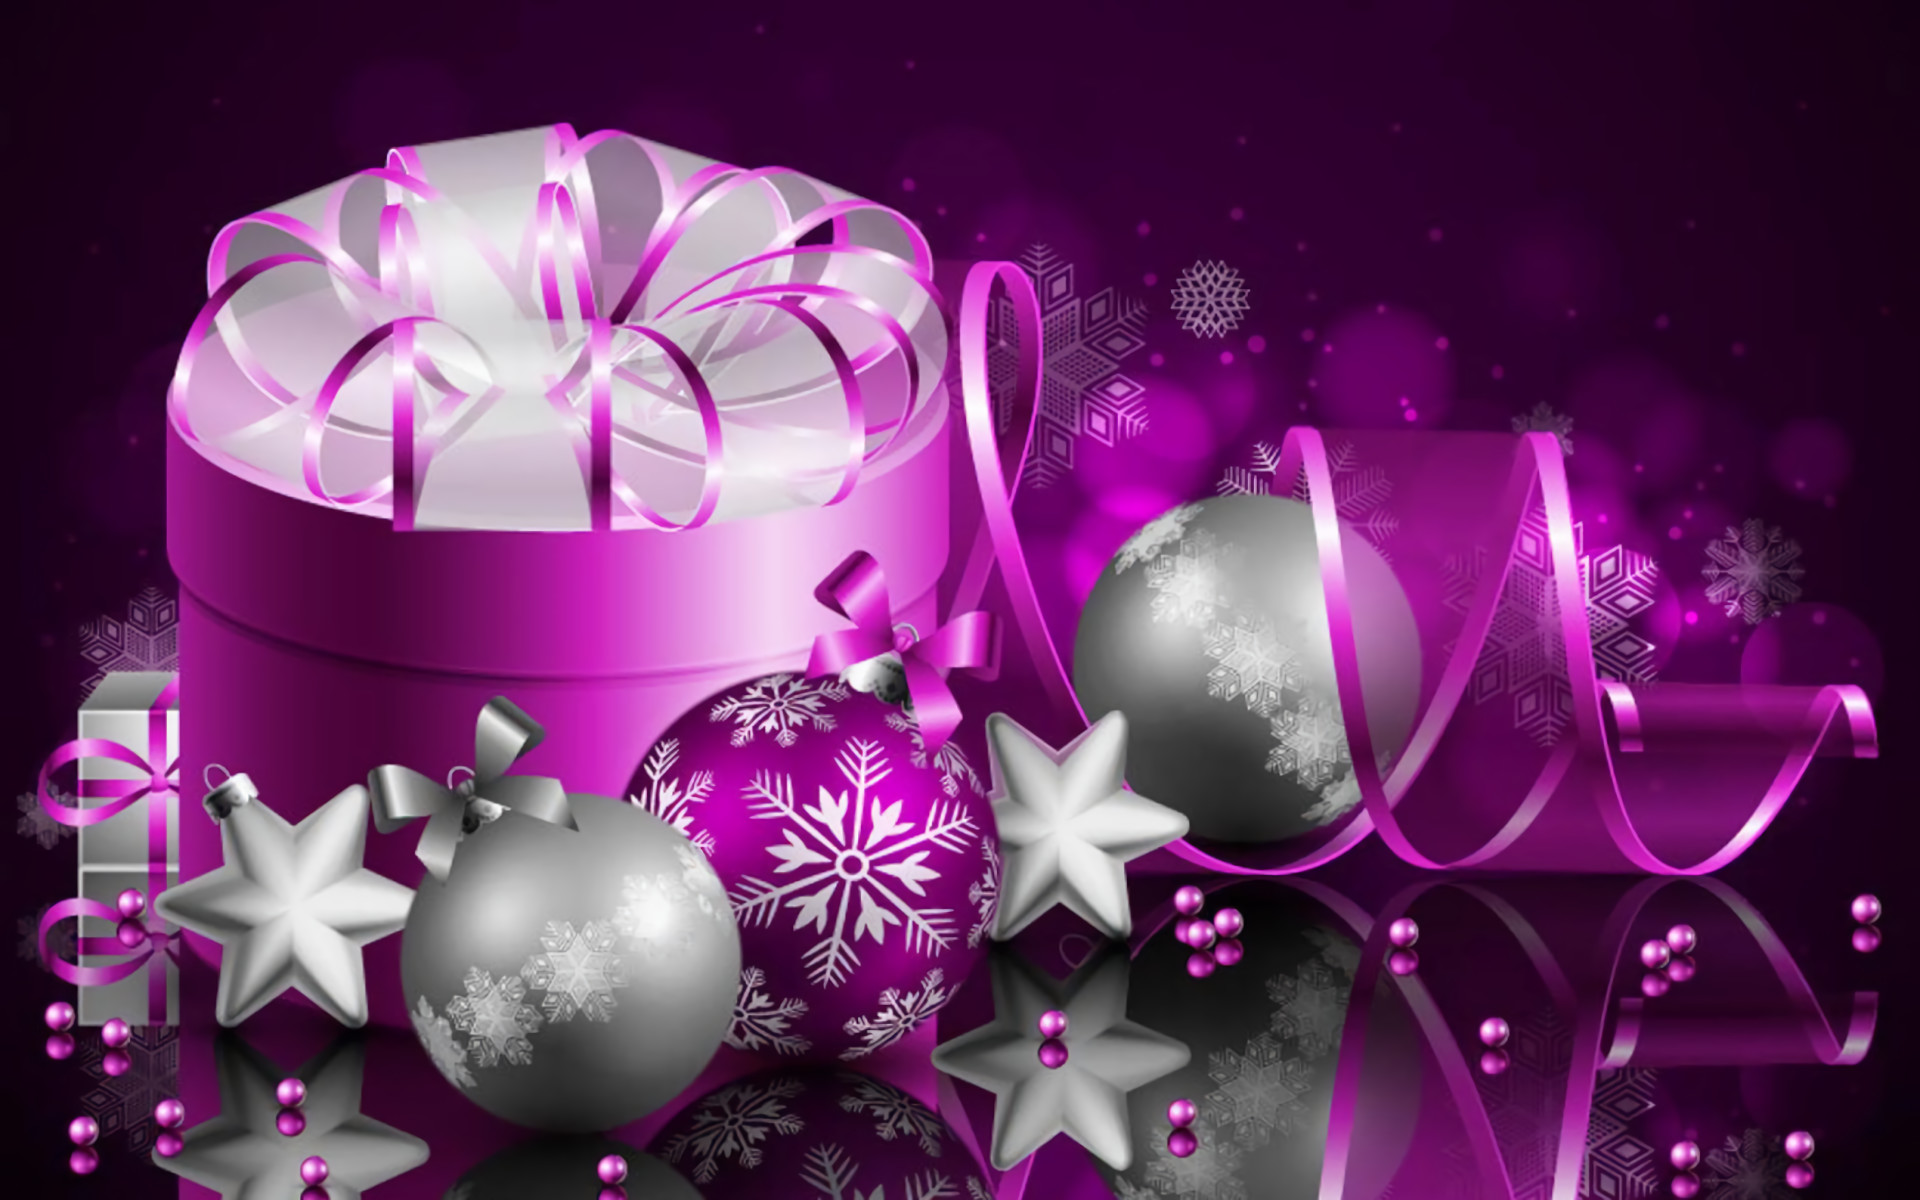 1920x1200 Holiday - Christmas Holiday Purple Silver Gift Christmas Ornaments Ribbon  Wallpaper